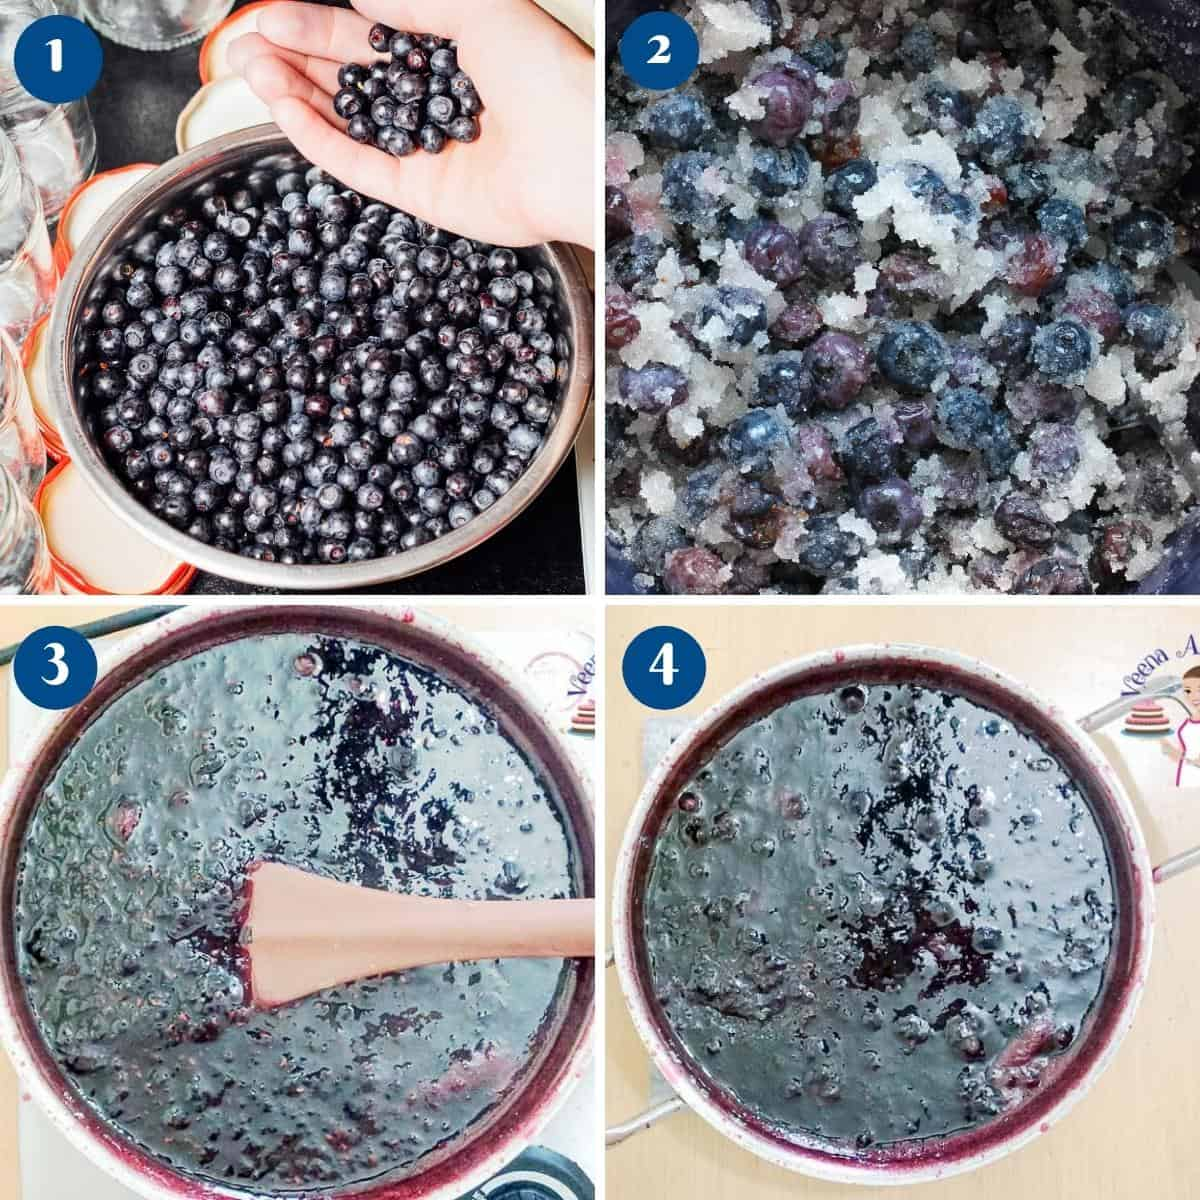 Progress pictures collage making jam with blueberries.